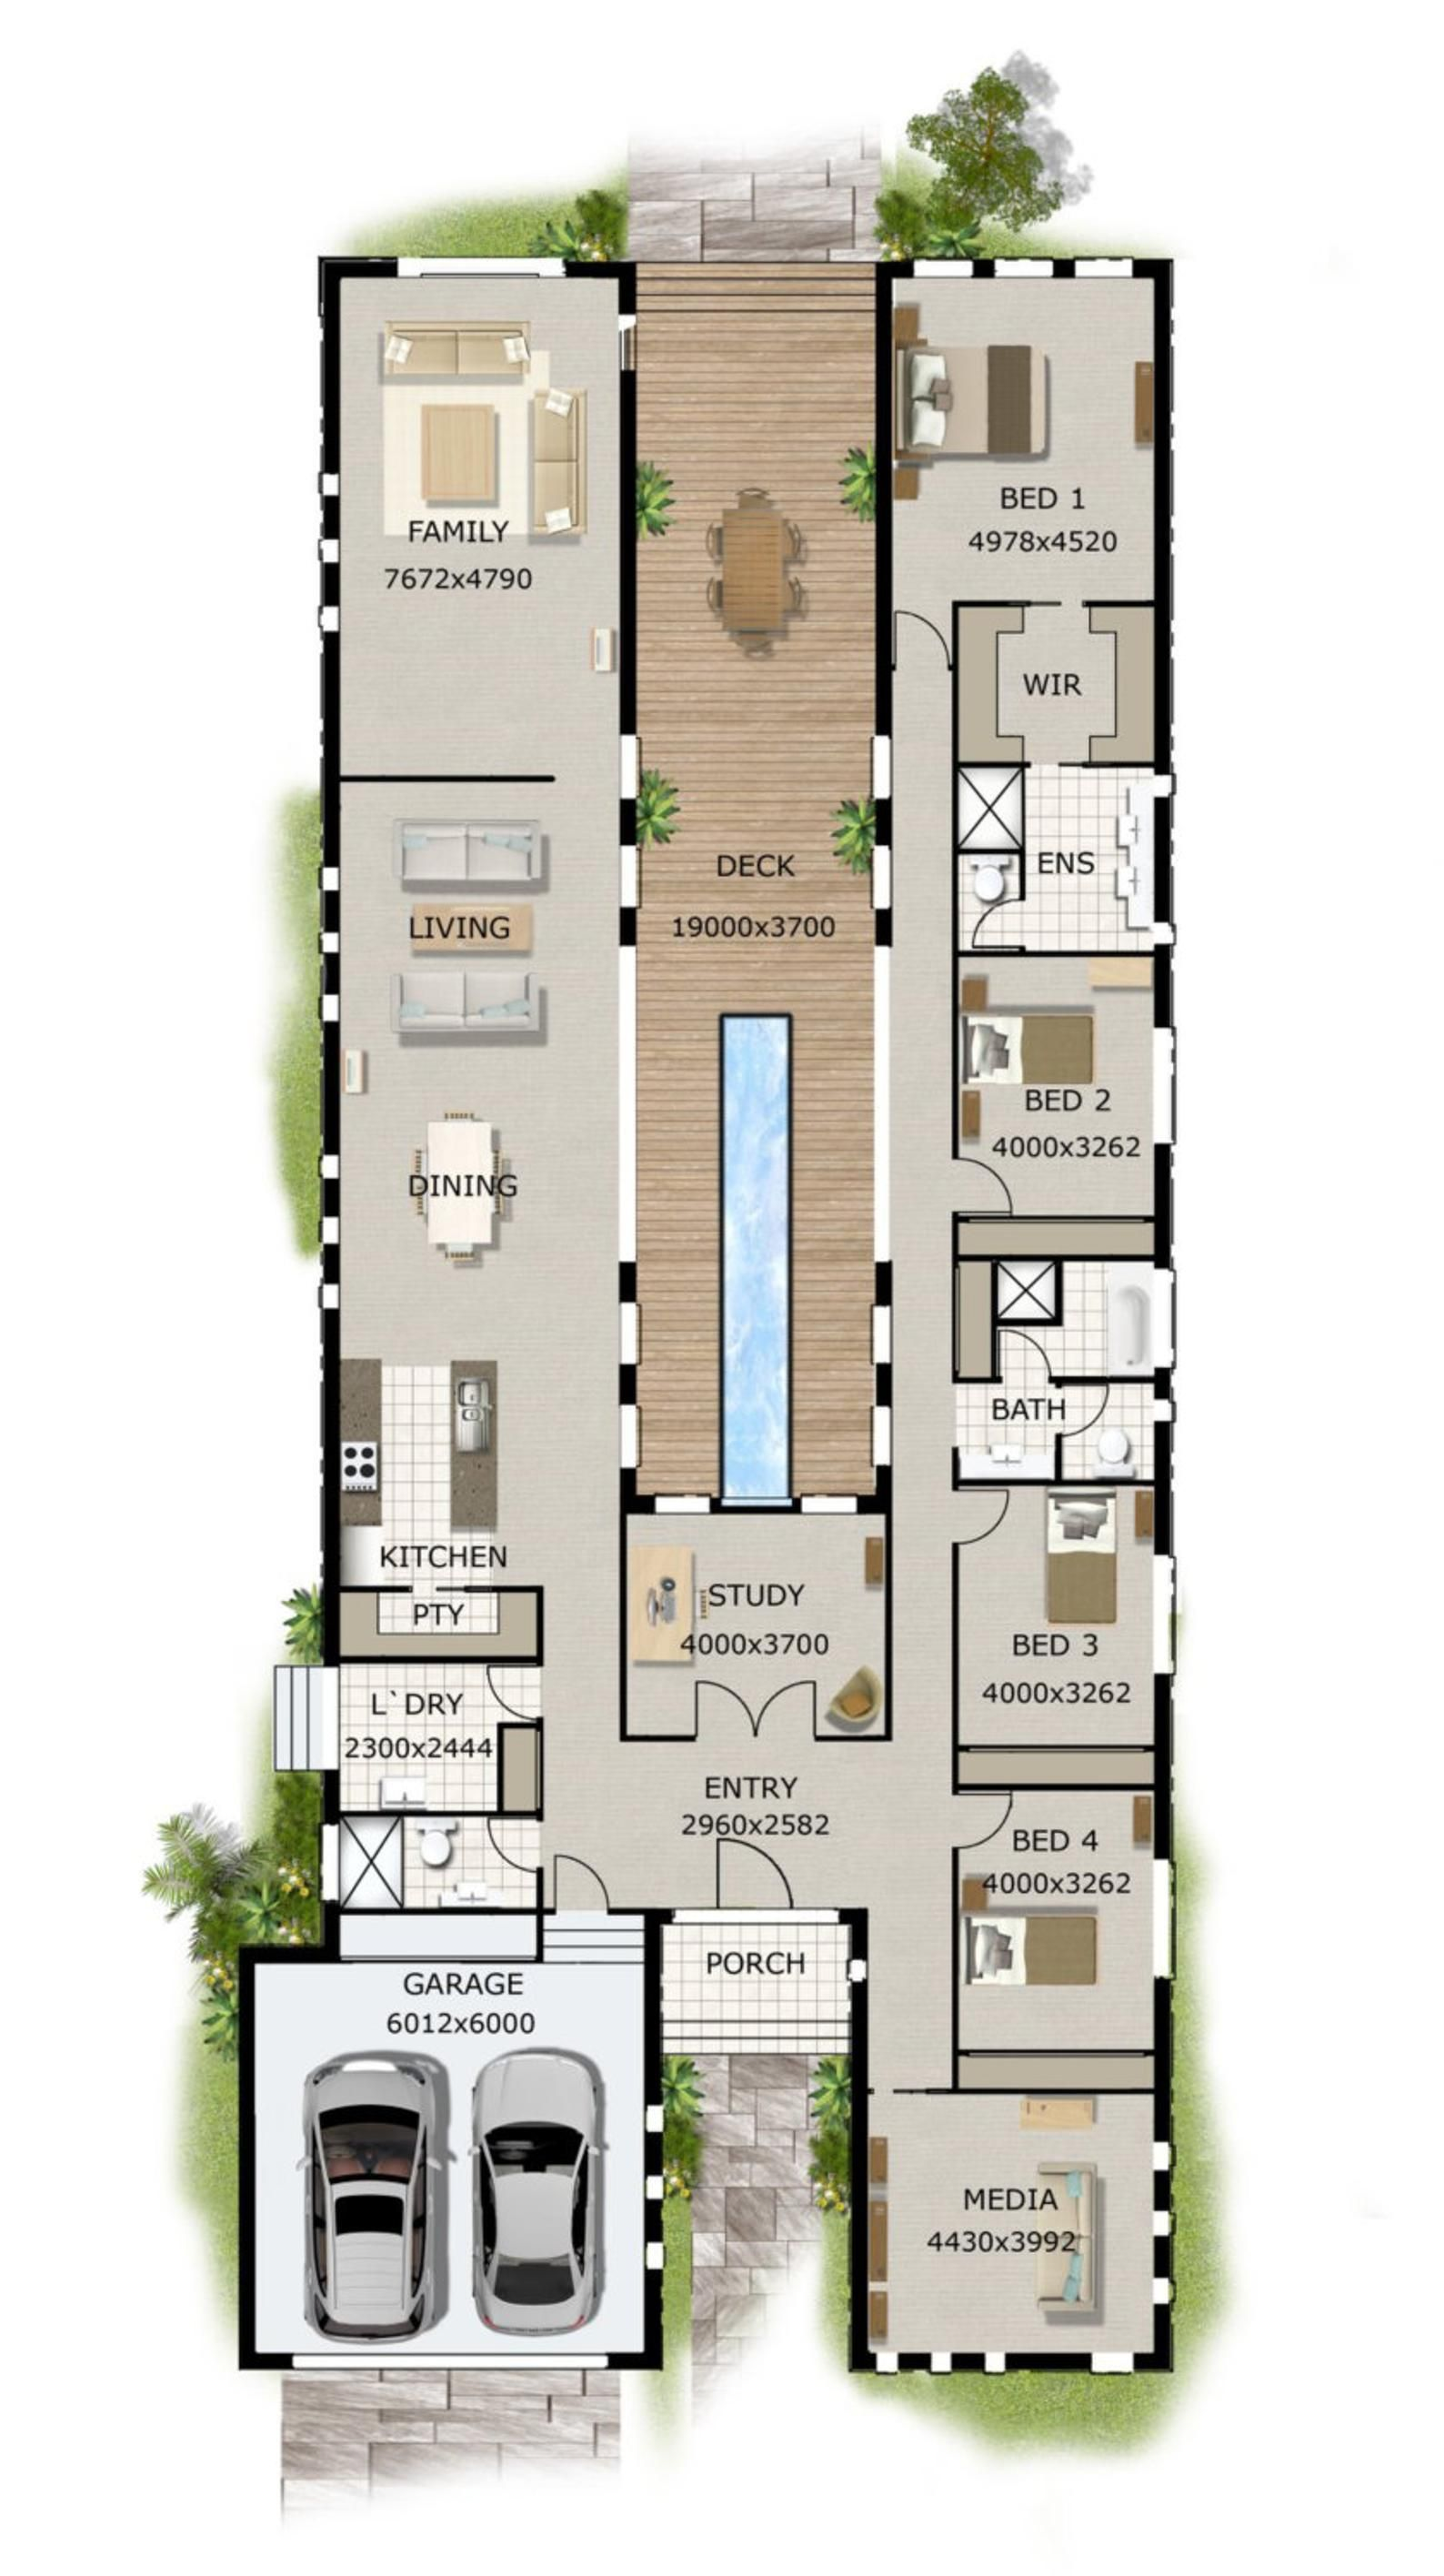 418m2 4503 Sq Foot 5 Bed Flat 4 plus study Home design 5 bed Home home plans Modern 5 bedroom Home Plans